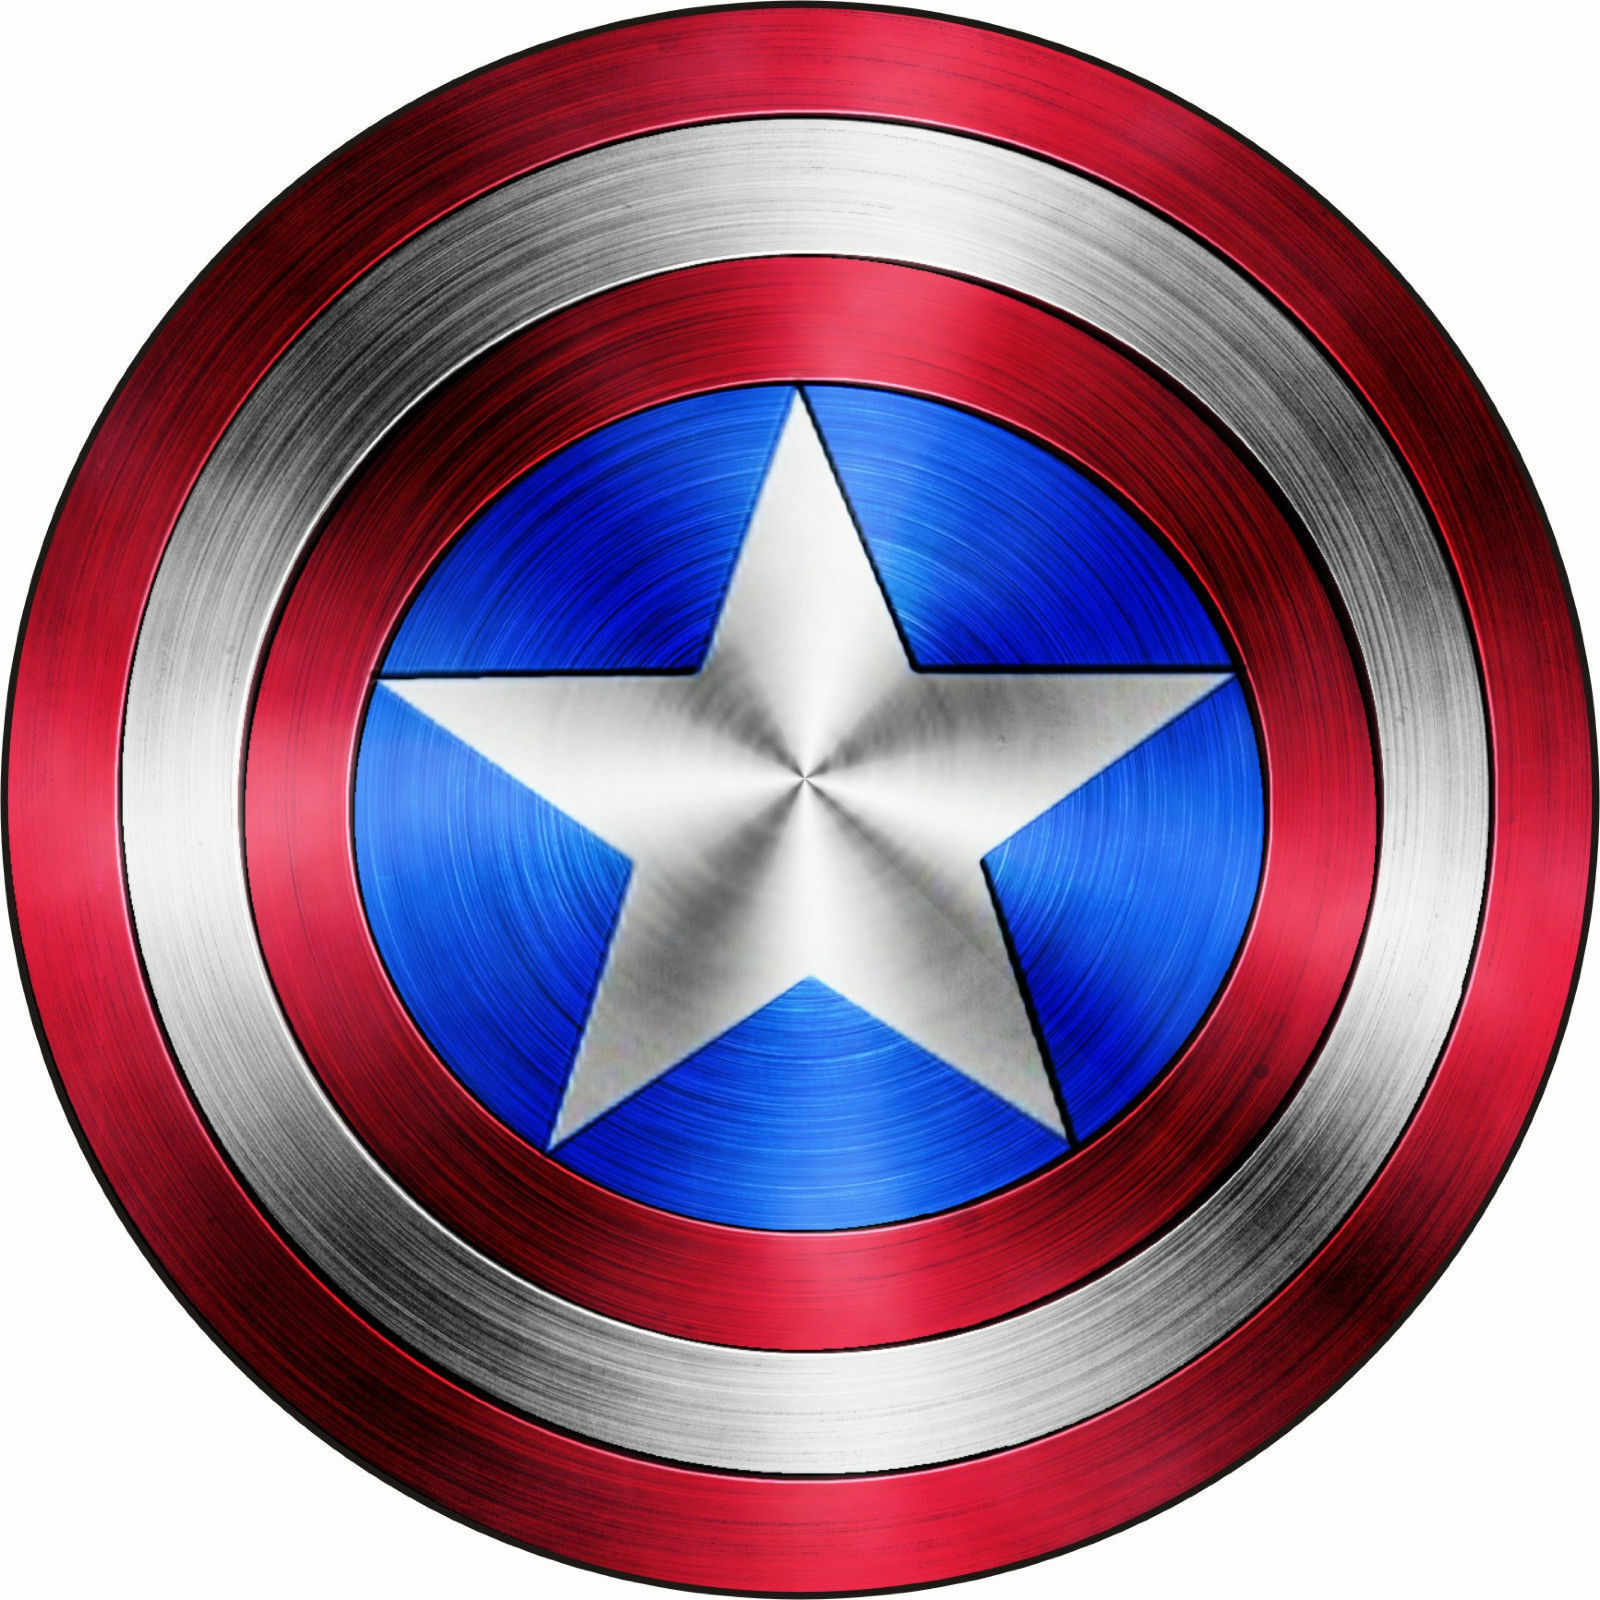 Home Decoration - Captain America Shield Logo Comic Superhero Vinyl Decal Sticker Buy2Get3rdFree